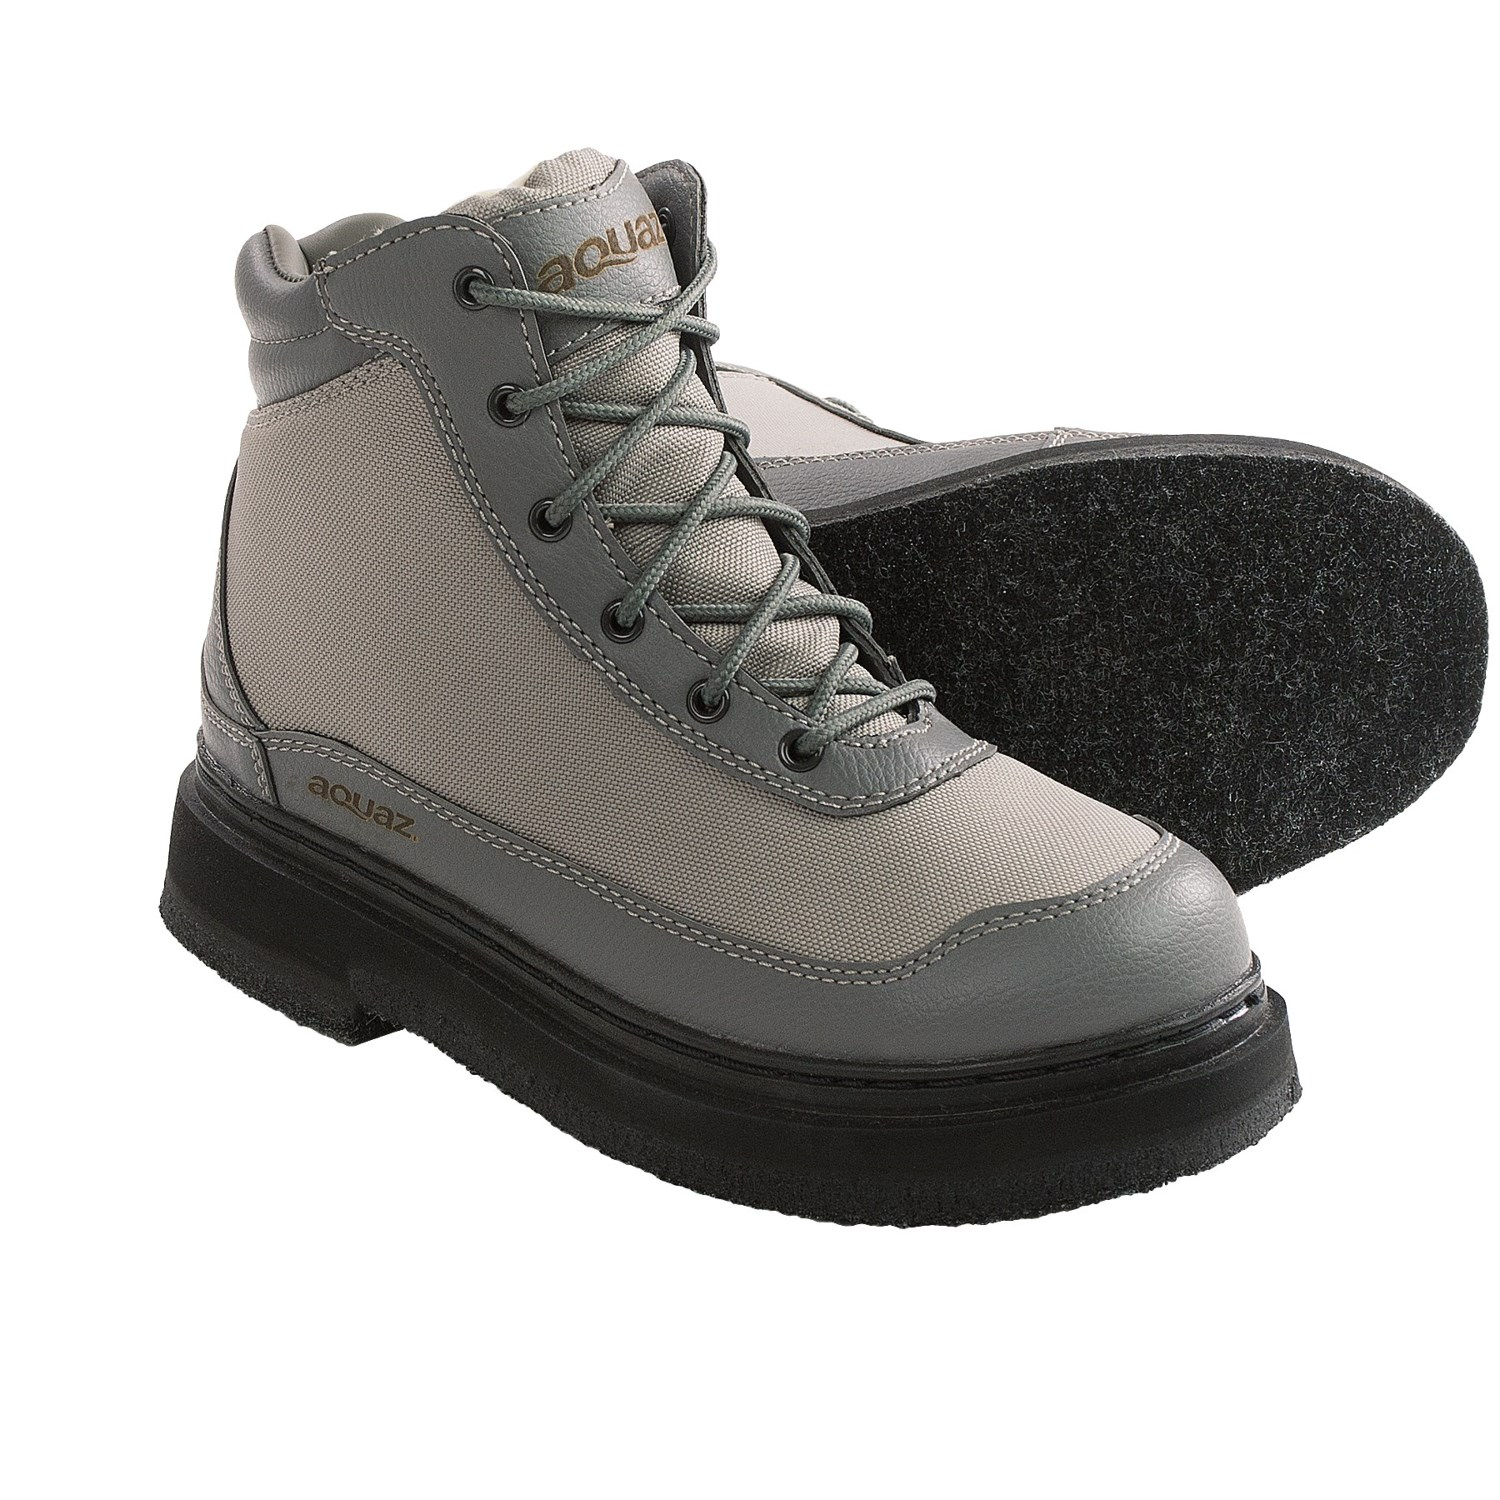 Aquaz rouge wading boots for men and women 9237w save 61 for Womens fishing boots